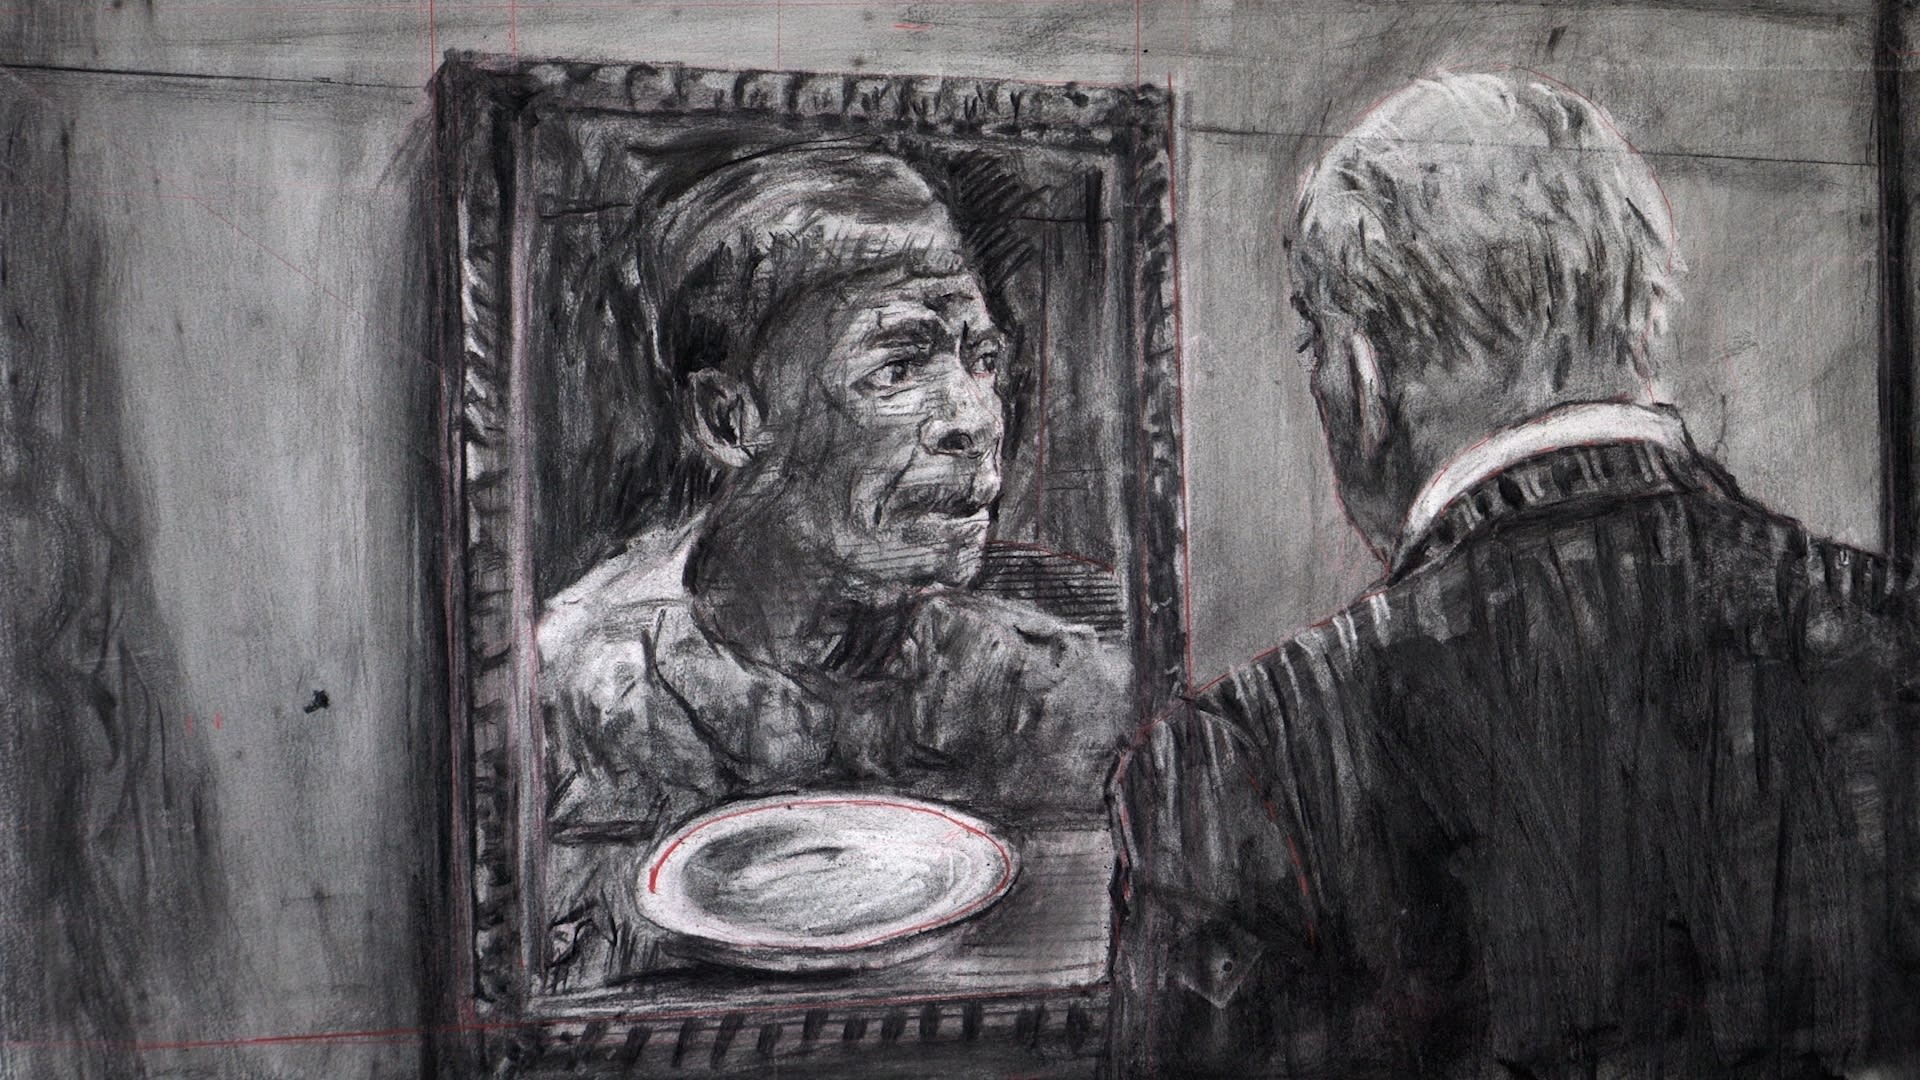 A charcoal drawing of 2 men by William Kentridge